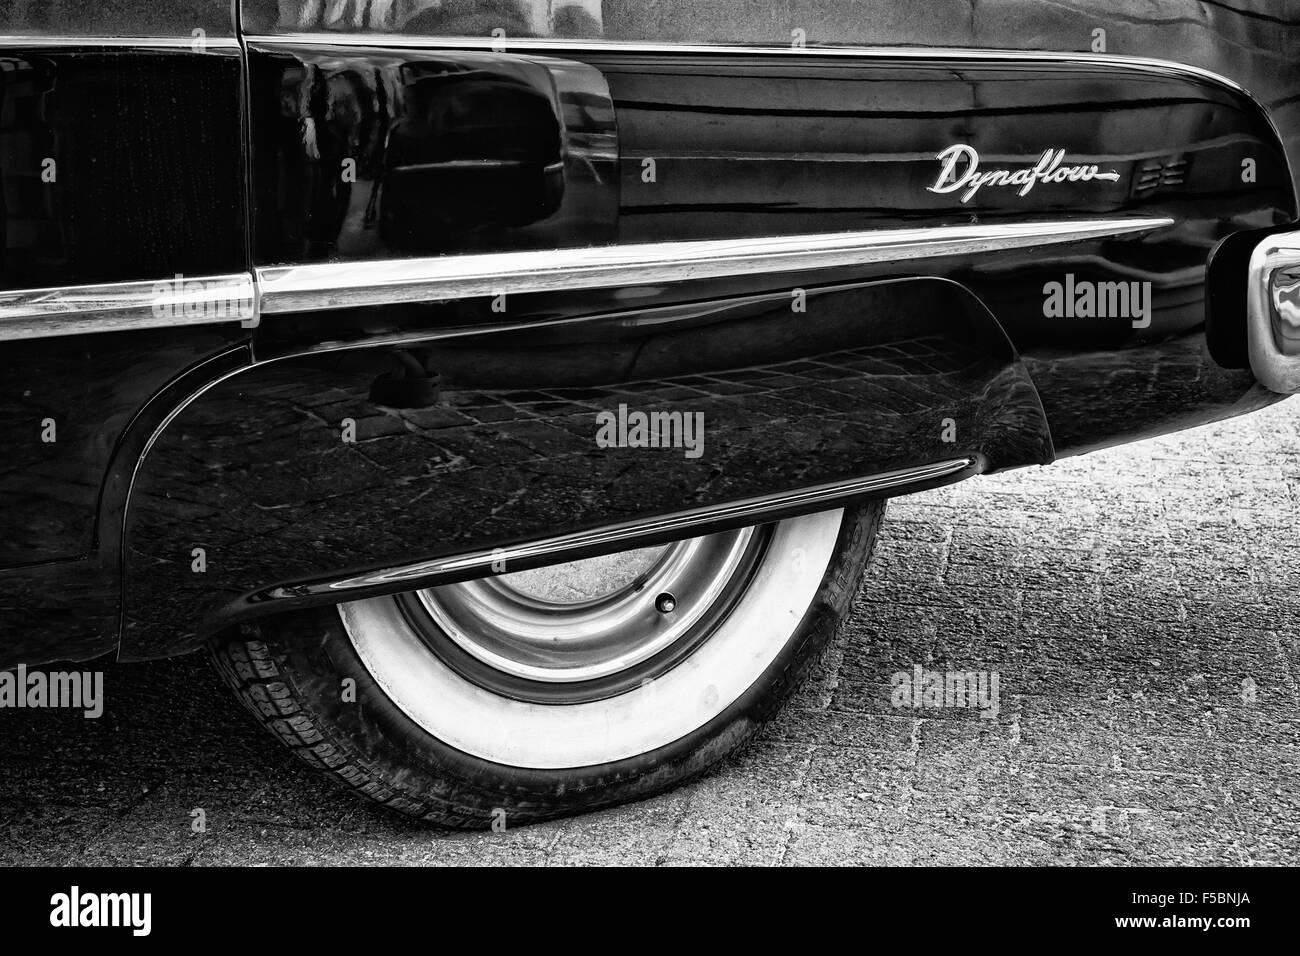 classic car close up - Stock Image